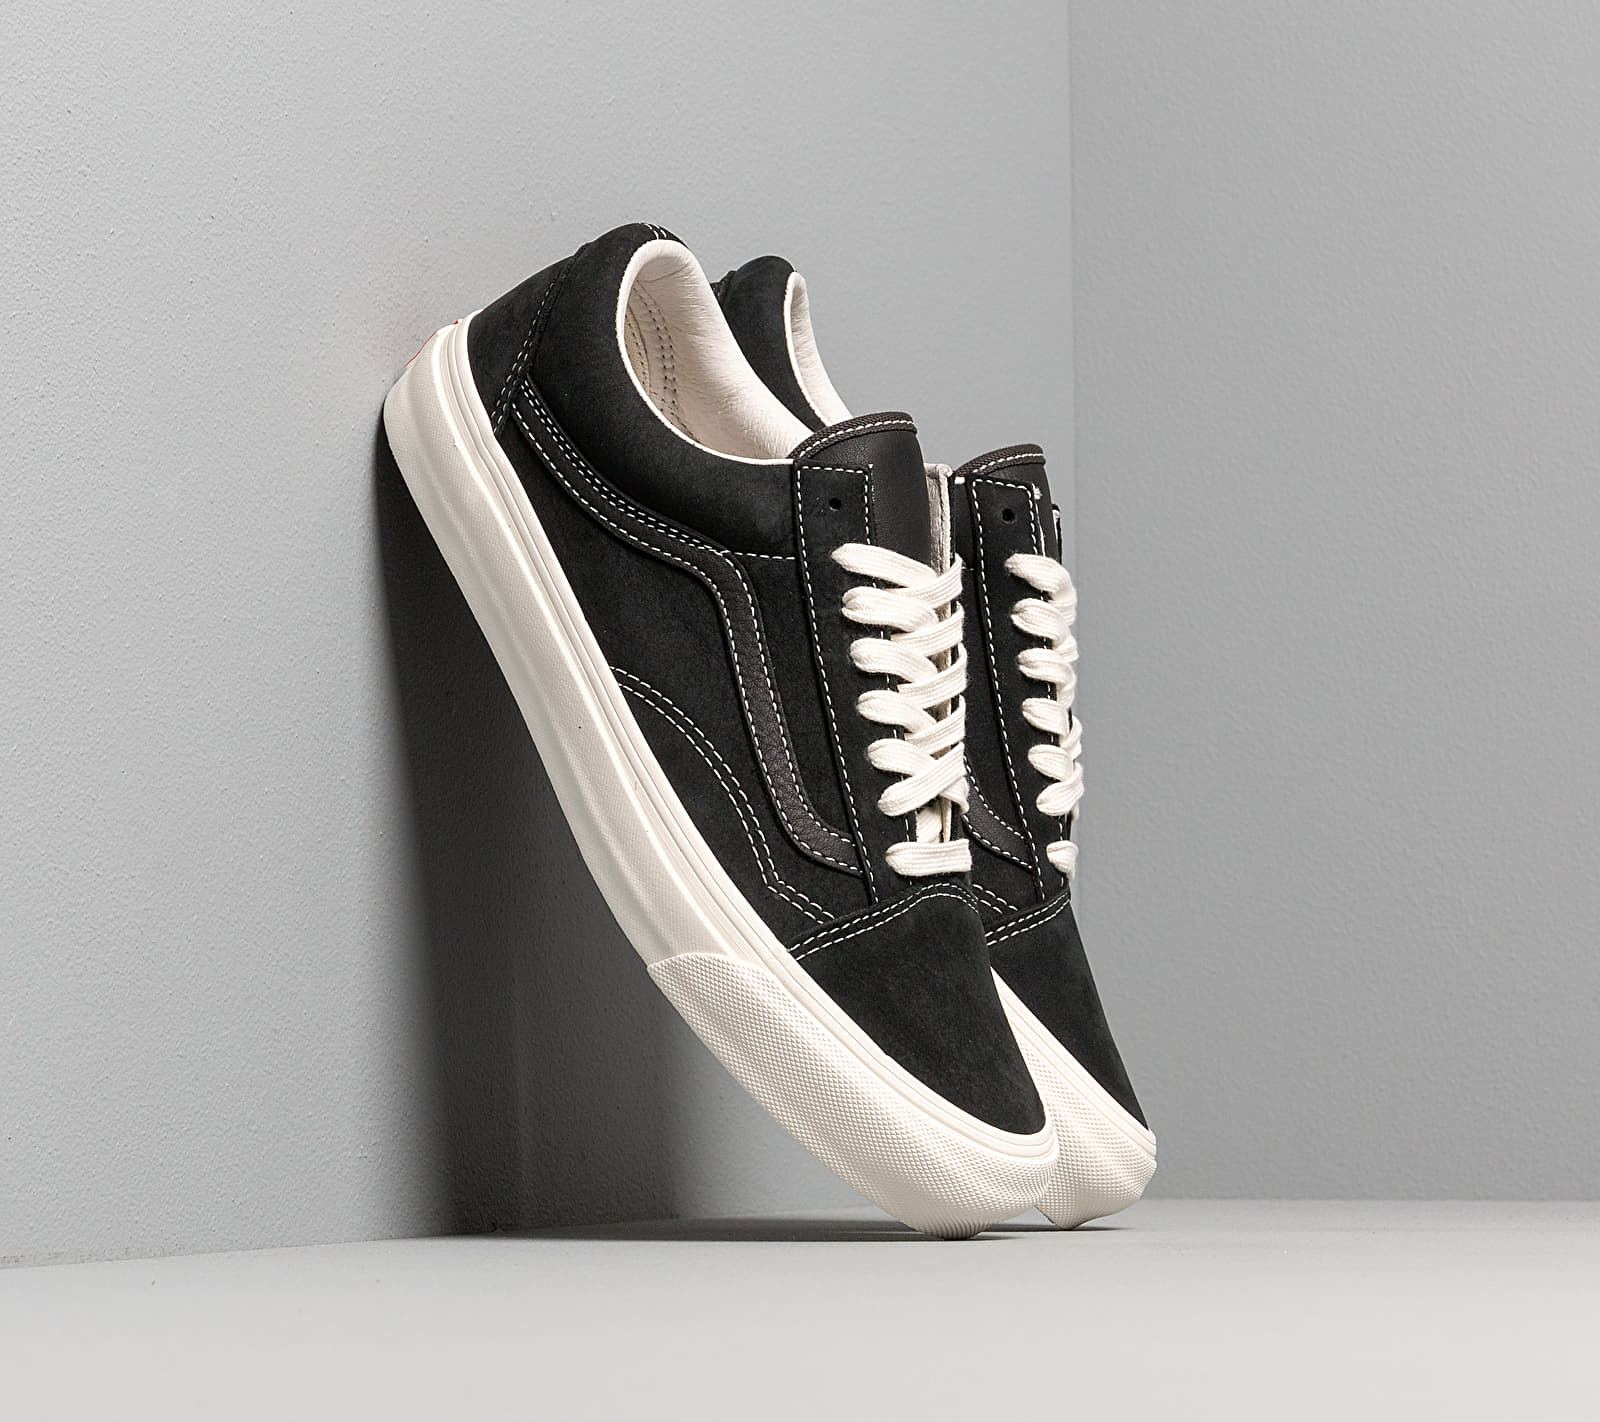 Vans OG Old Skool LX (Nubuck/ Leather) Raven/ Black VN0A4P3XTGJ1